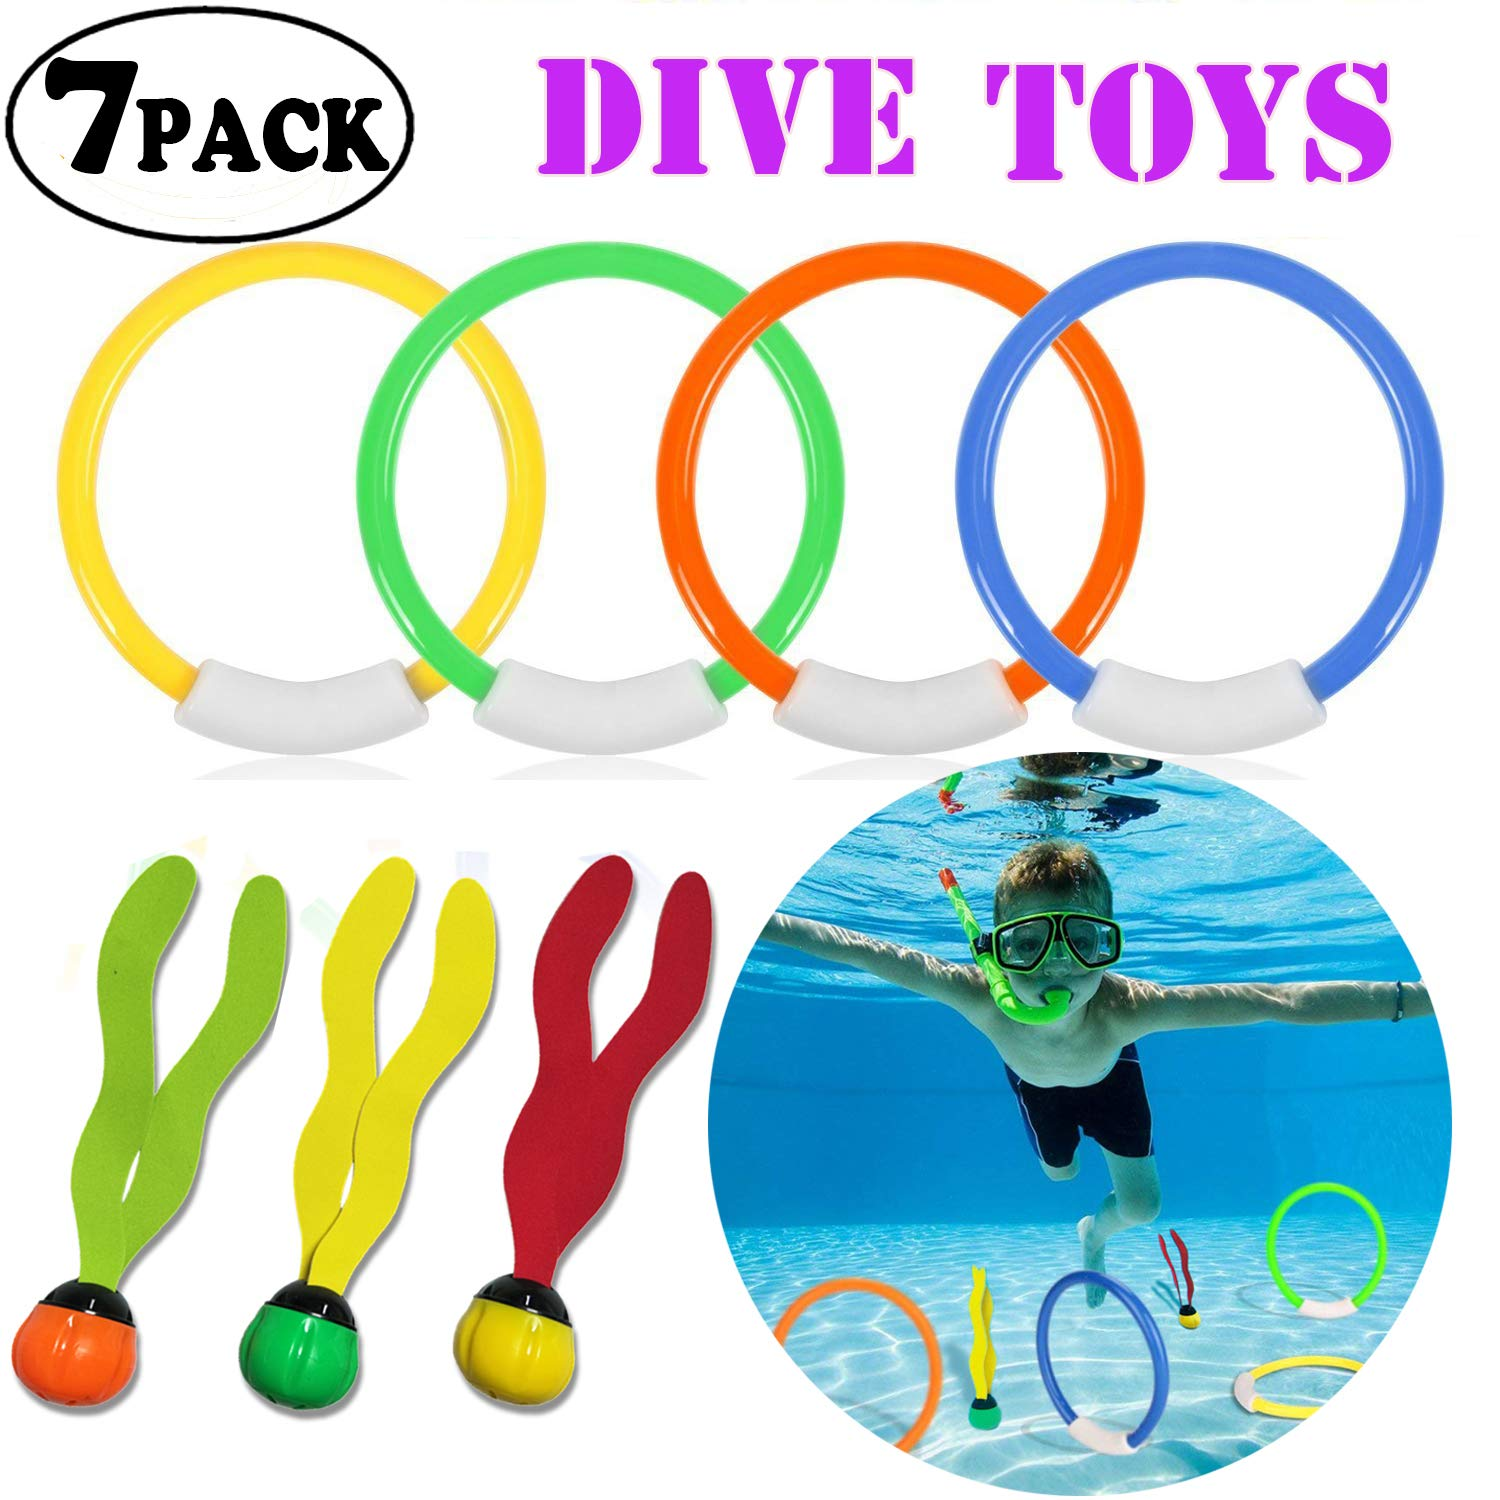 7 PACK Durable Swim Dive Pool Toy Set Diving Rings Aquatic Dive Balls Underwater Swimming Pool Toys for Kids Travel School Beach Outdoors Birthday Gifts ONMet